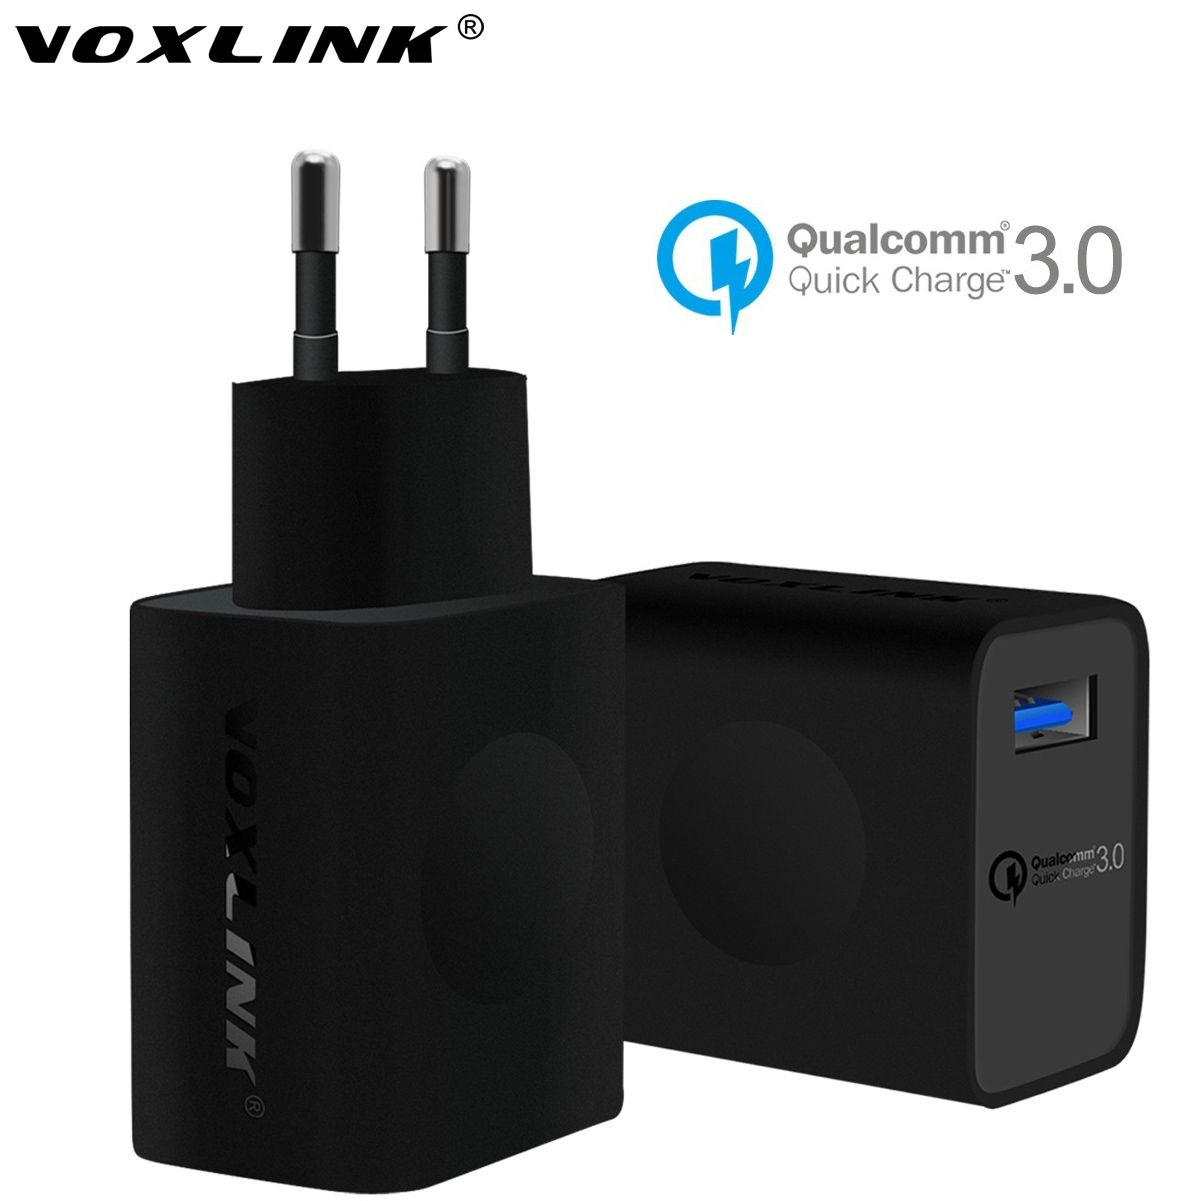 [Qualcomm Certificat] VOXLINK Charge Rapide 3.0 USB Mur Chargeur 18 W Voyage USB Chargeur Pour Samsung Galaxy S7/S7 Bord LG/Sony